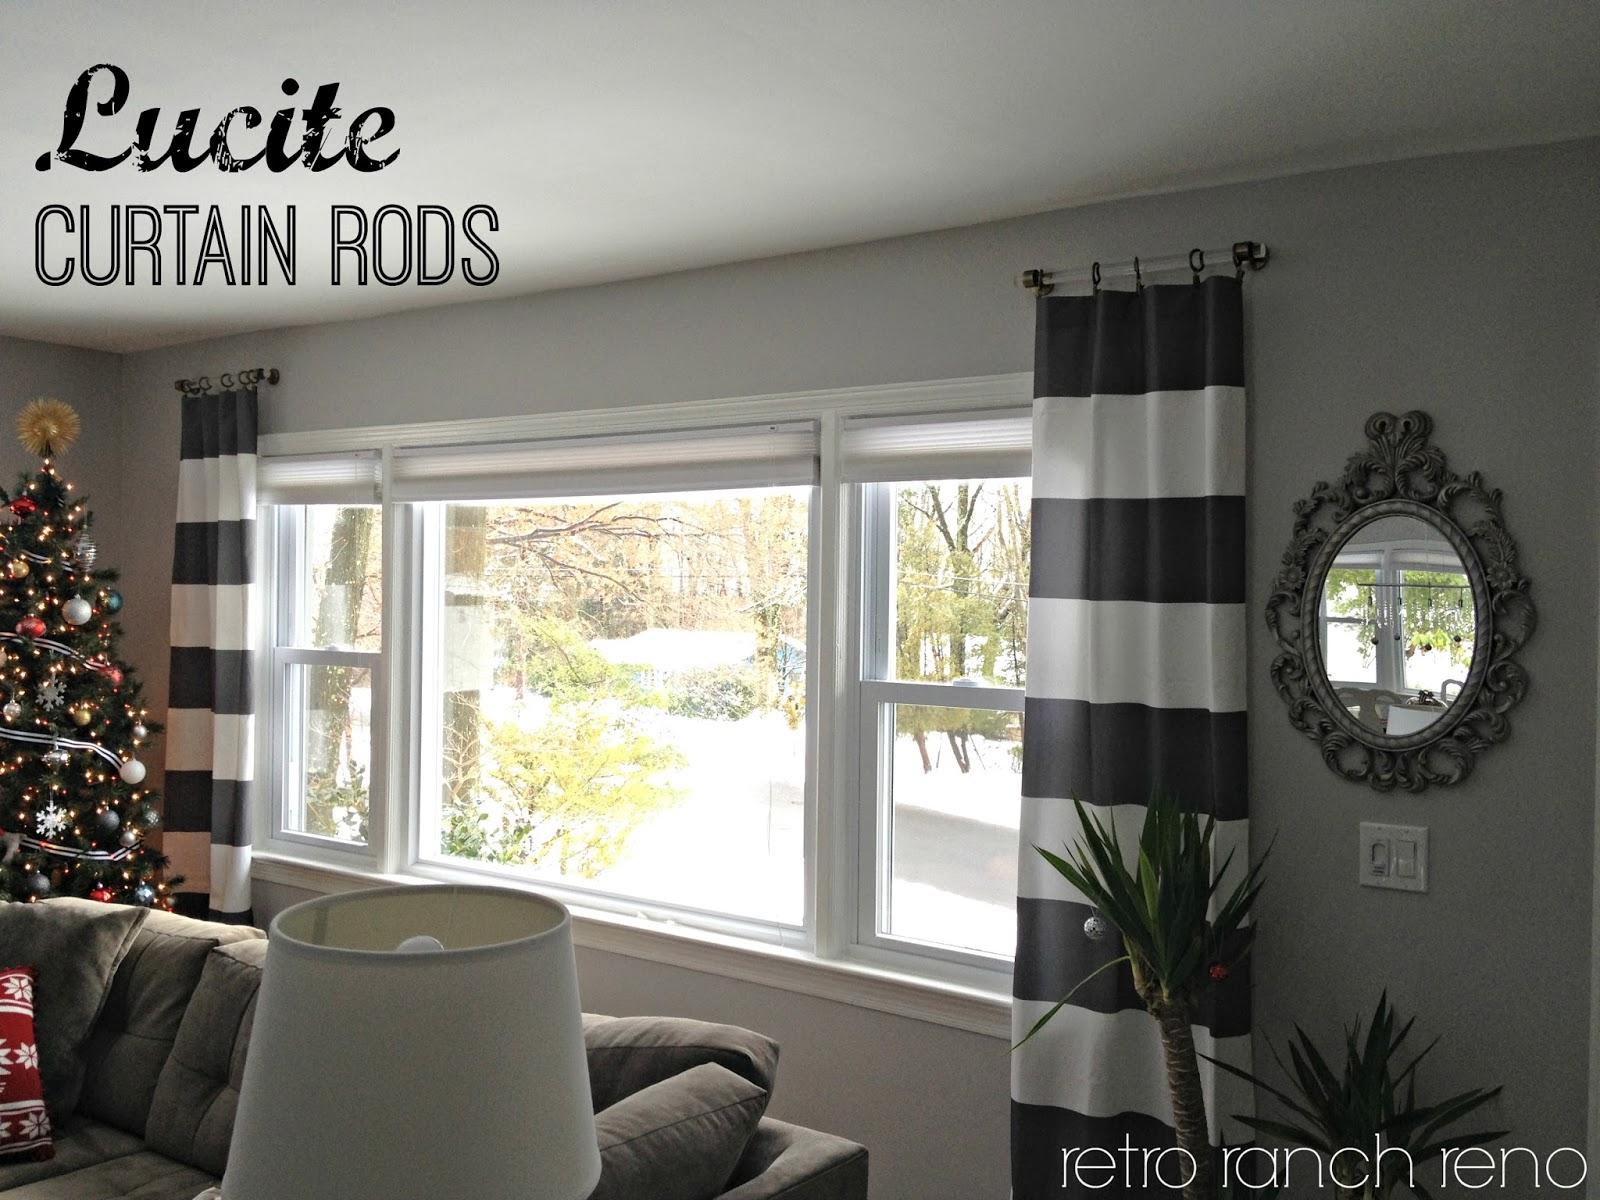 Do you like?! I loooooove. I could definitely use more lucite in my ...